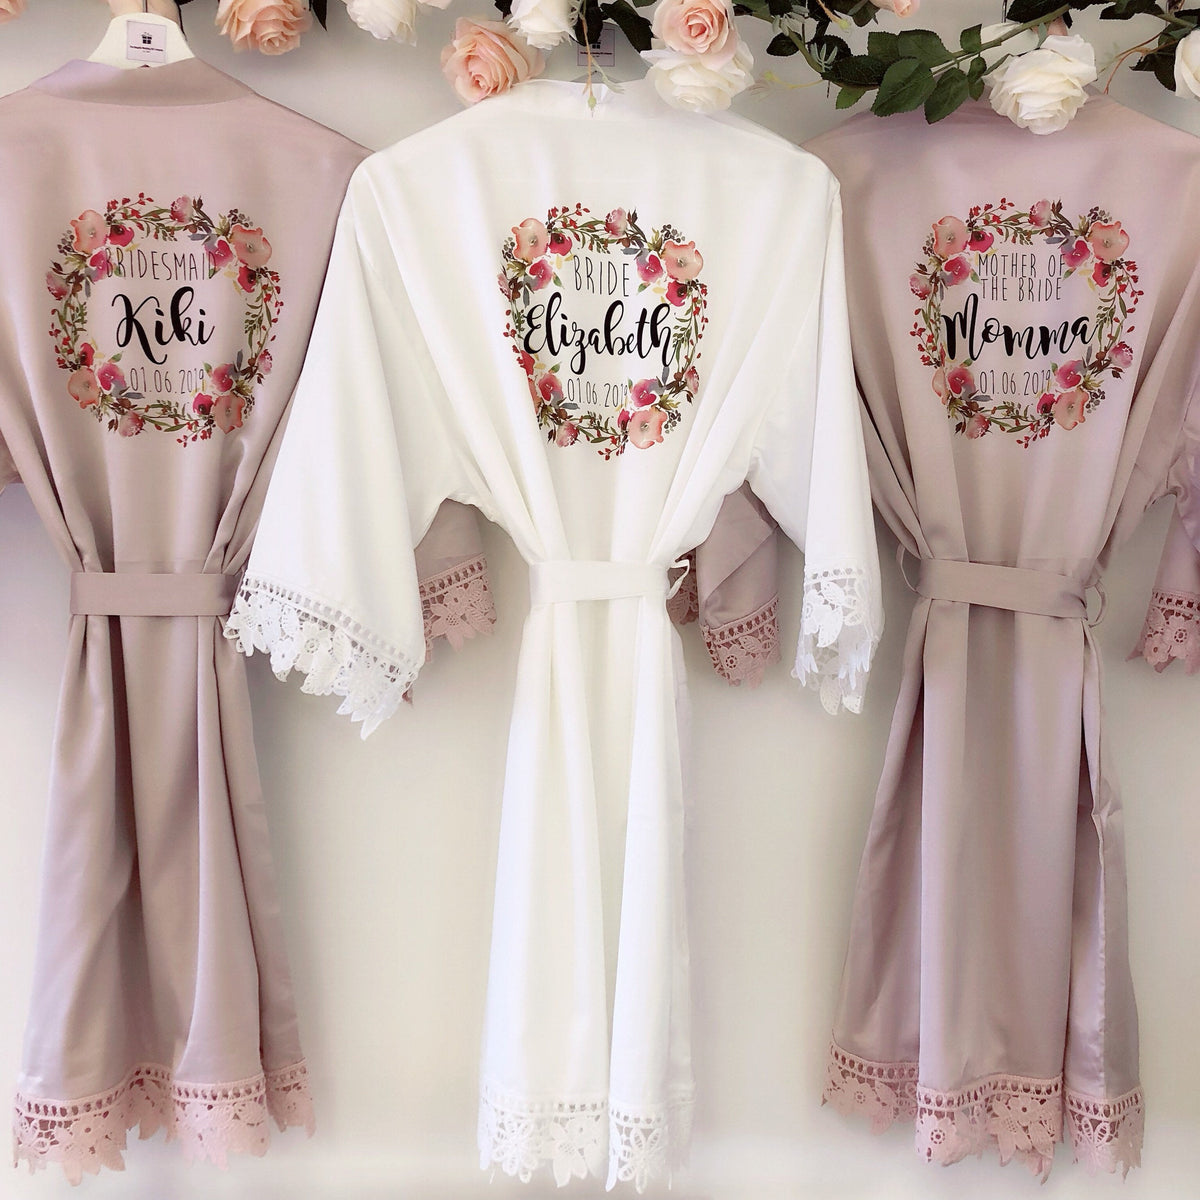 PEARL FLORENCE robe with pink floral wreath